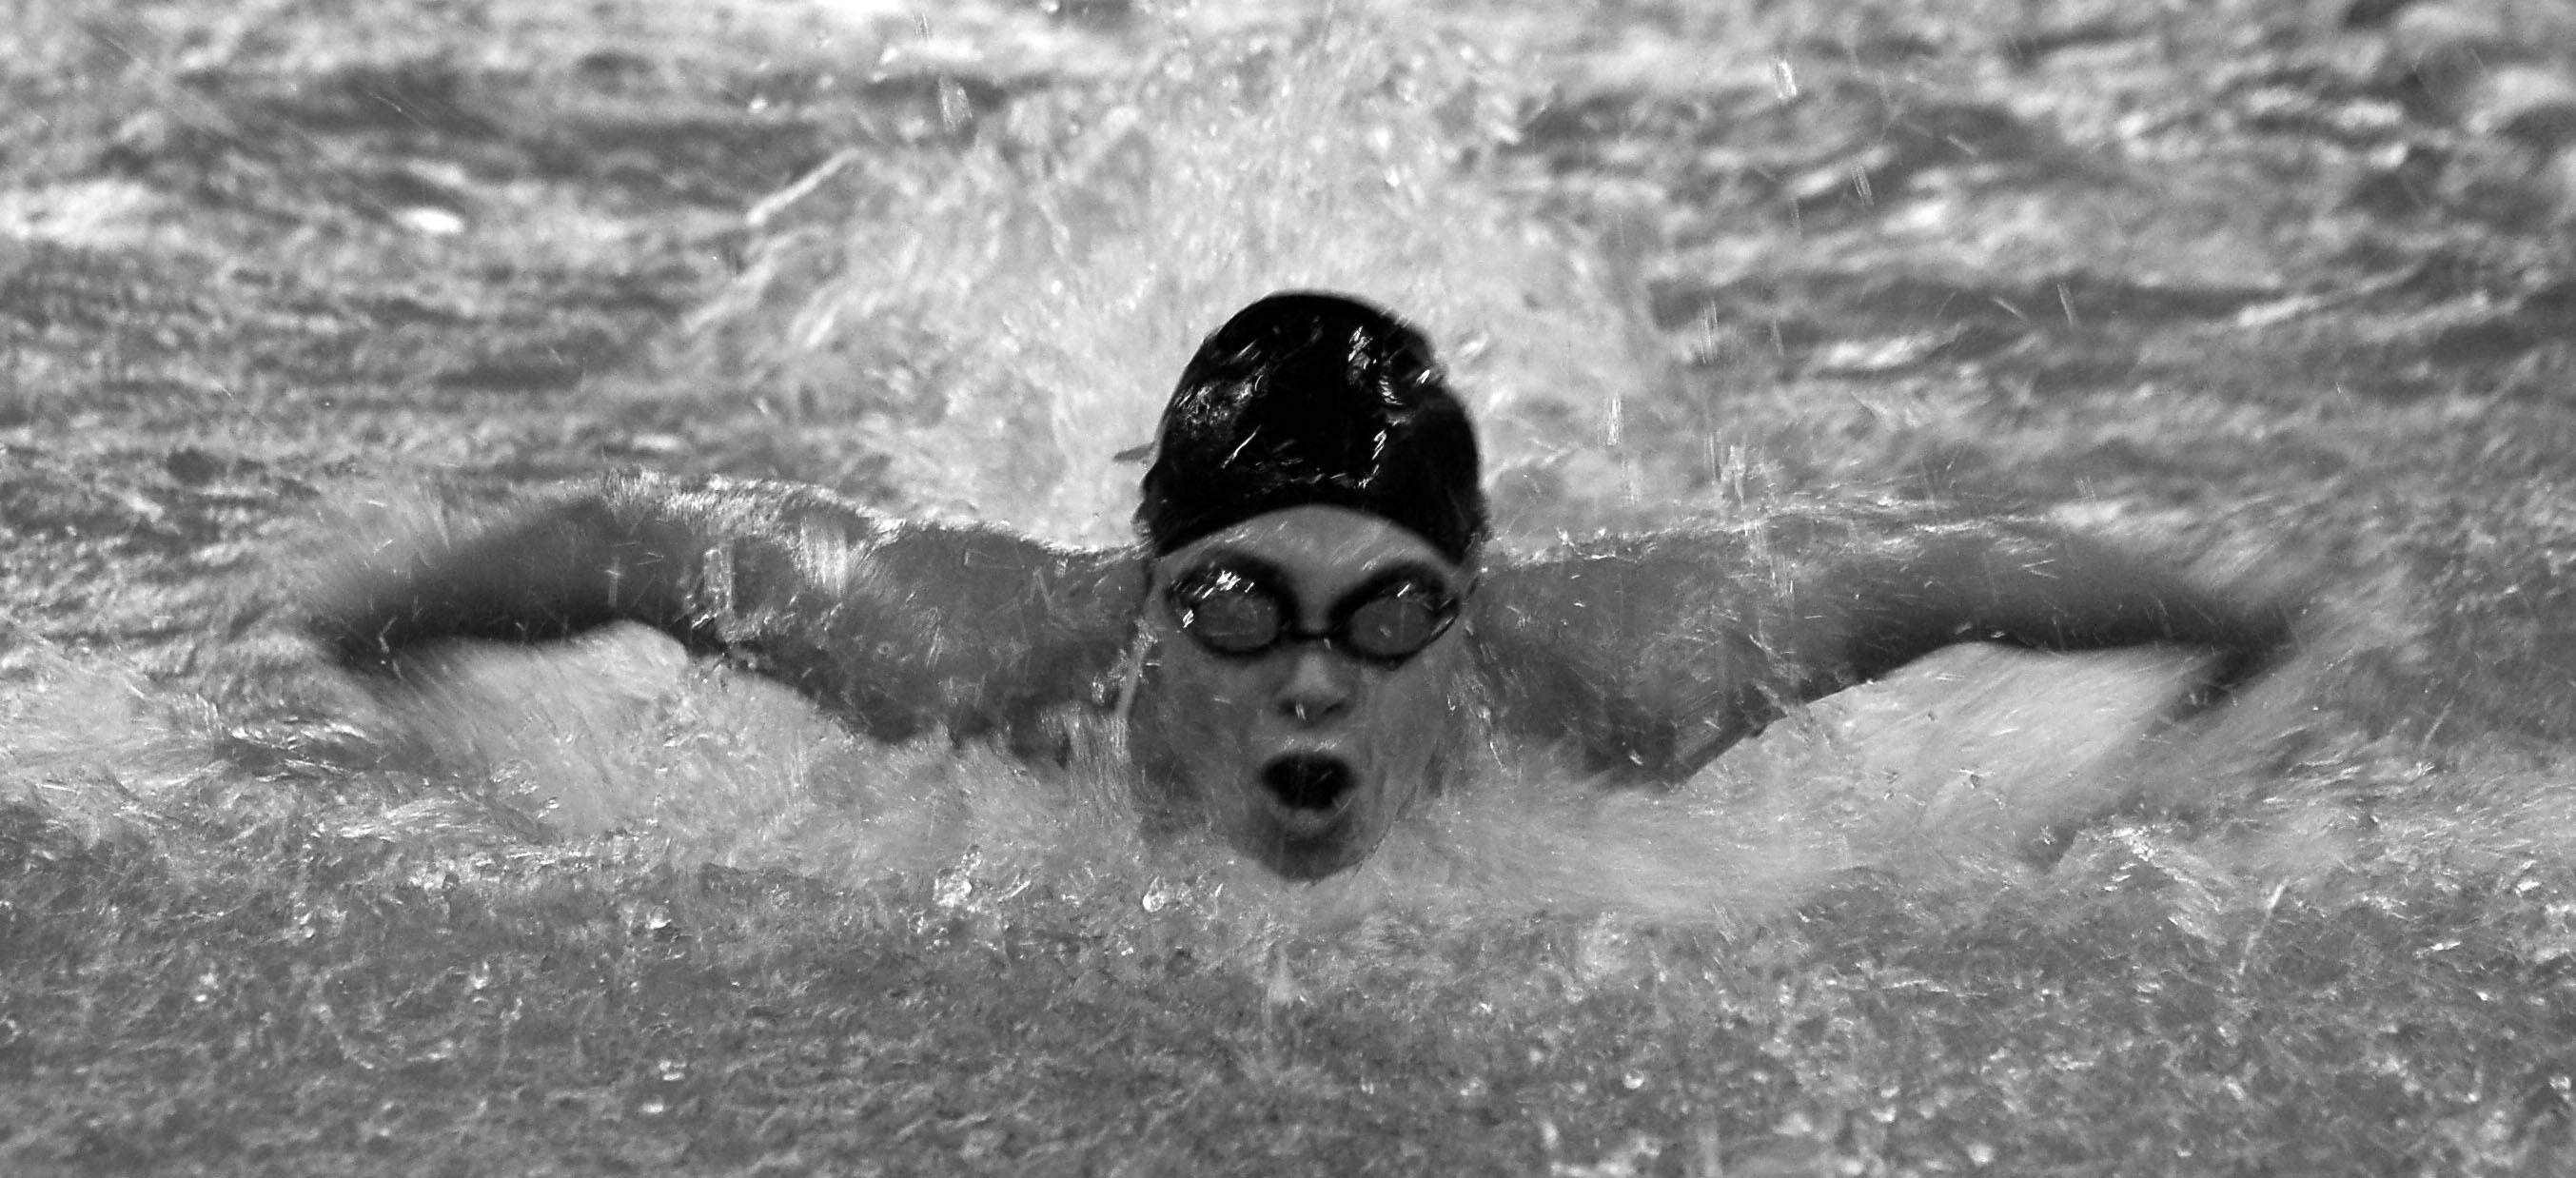 Brisk Butterfly: Senior captain Kathryn Ostrom competes in the 100 butterfly in a meet against Totino-Grace Oct. 4.